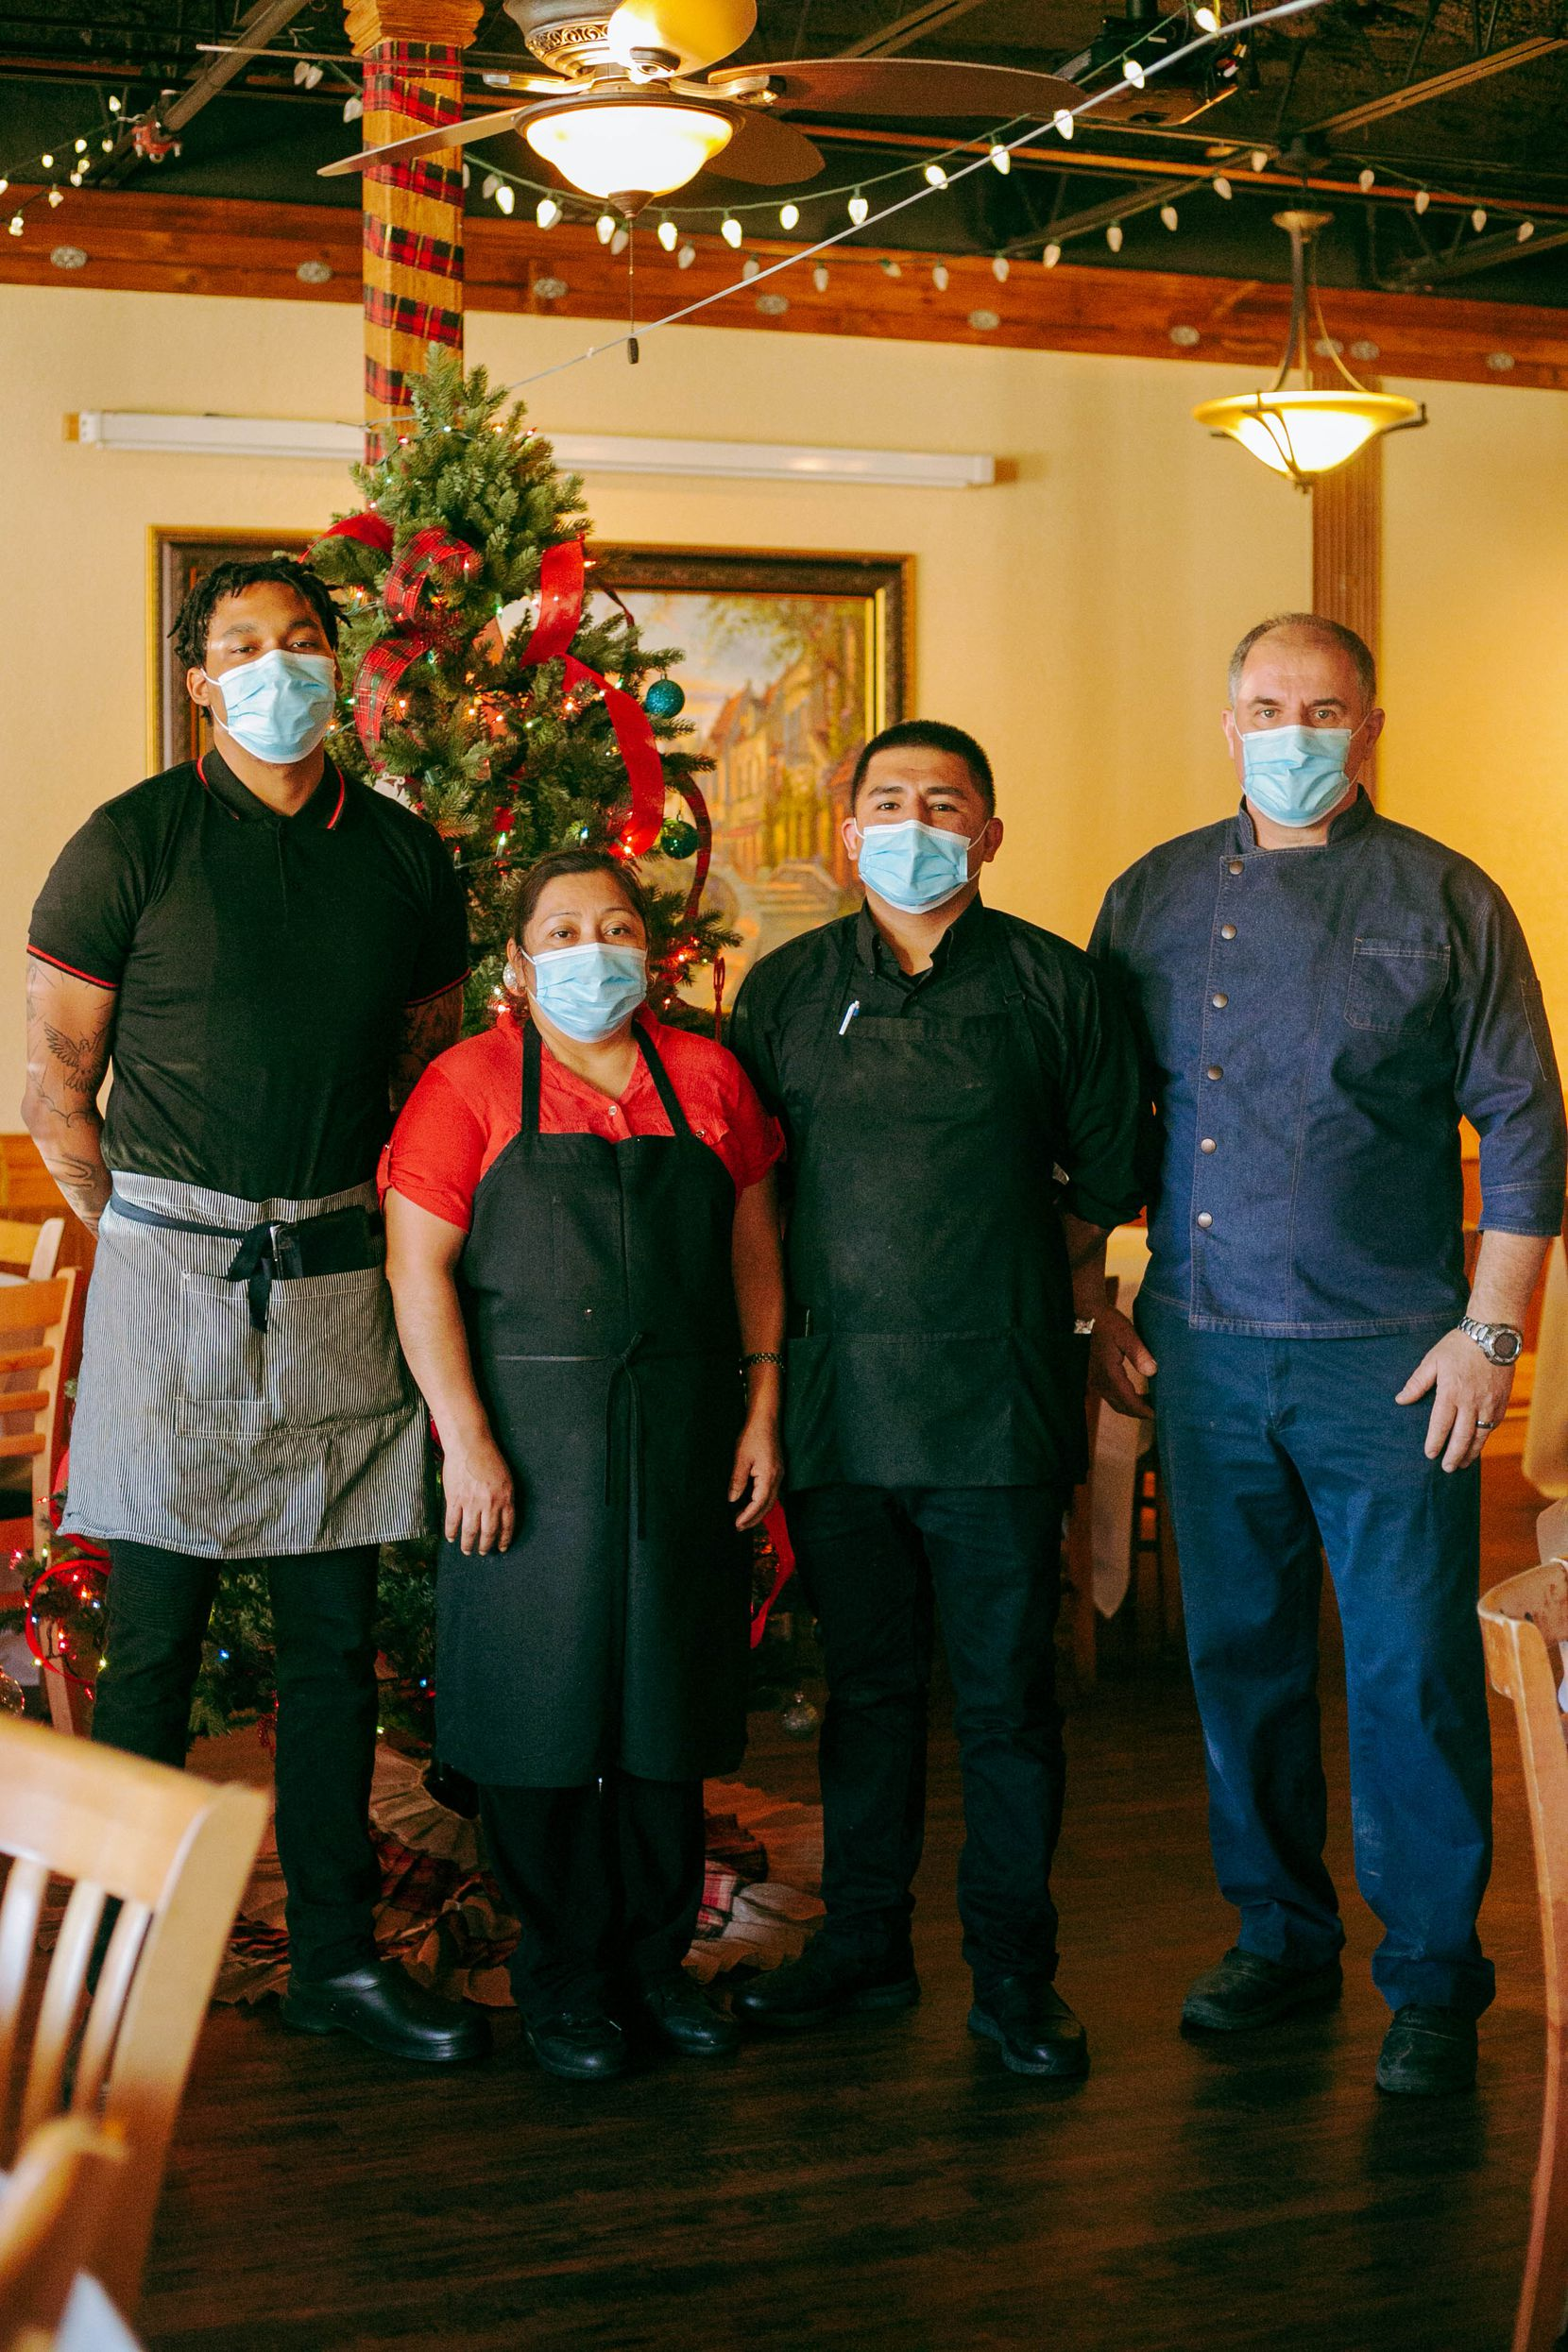 From left, Kyle Underwood, Candida Osilvo, Victor Caradilla, and Aboca's Italian Grill owner Artur Pira stand in Aboca's dining room on December 10, 2020.